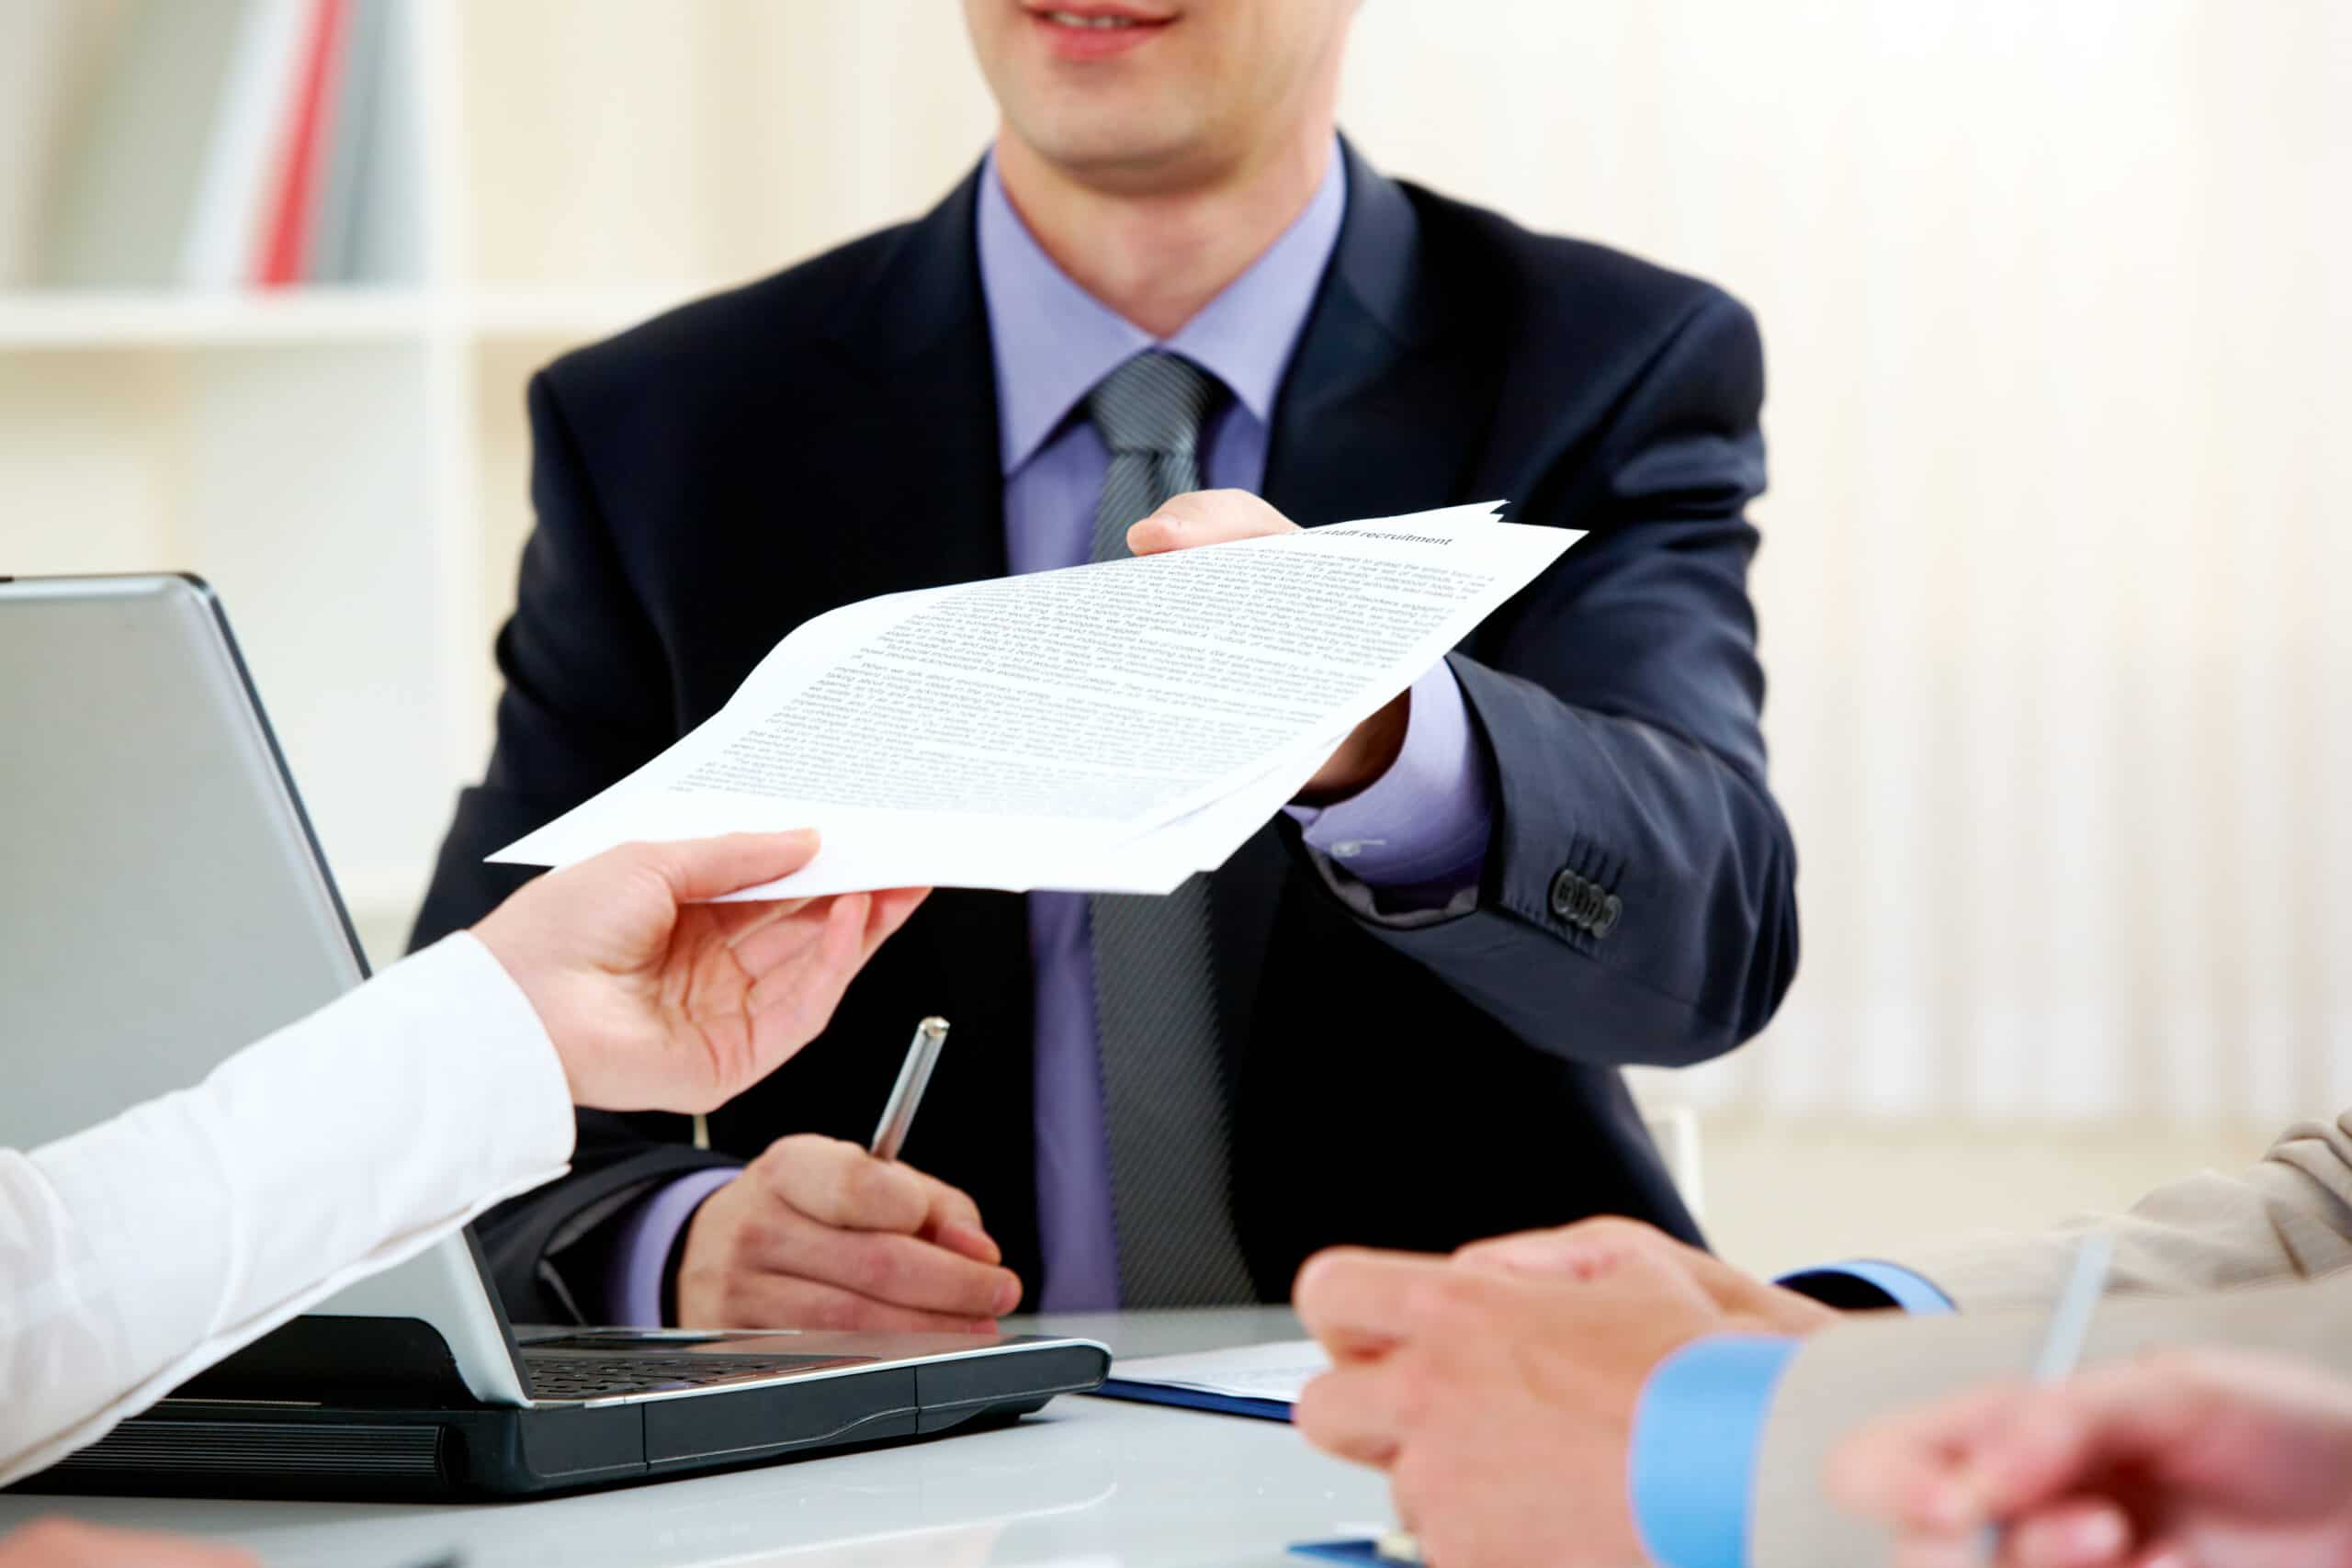 Know The Difference Between Inadmissible and Removable